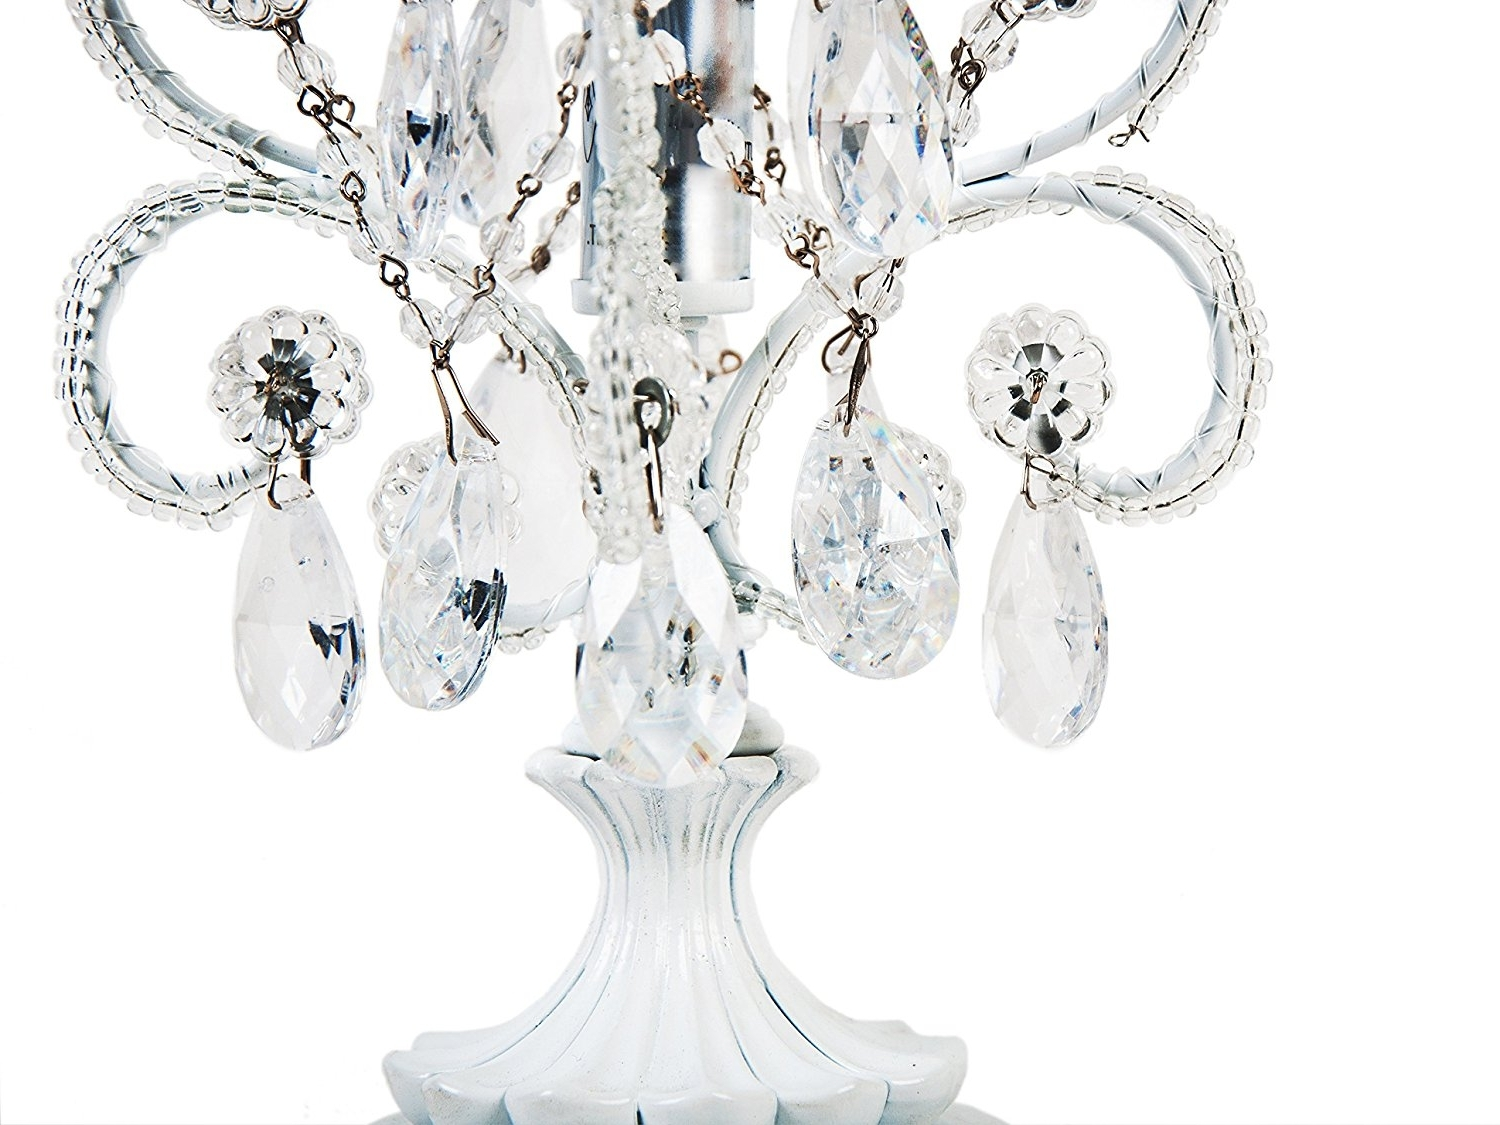 Amazon : Tadpoles Mini Chandelier Table Lamp, White : Crystal Pertaining To Best And Newest Mini Chandelier Table Lamps (View 3 of 15)